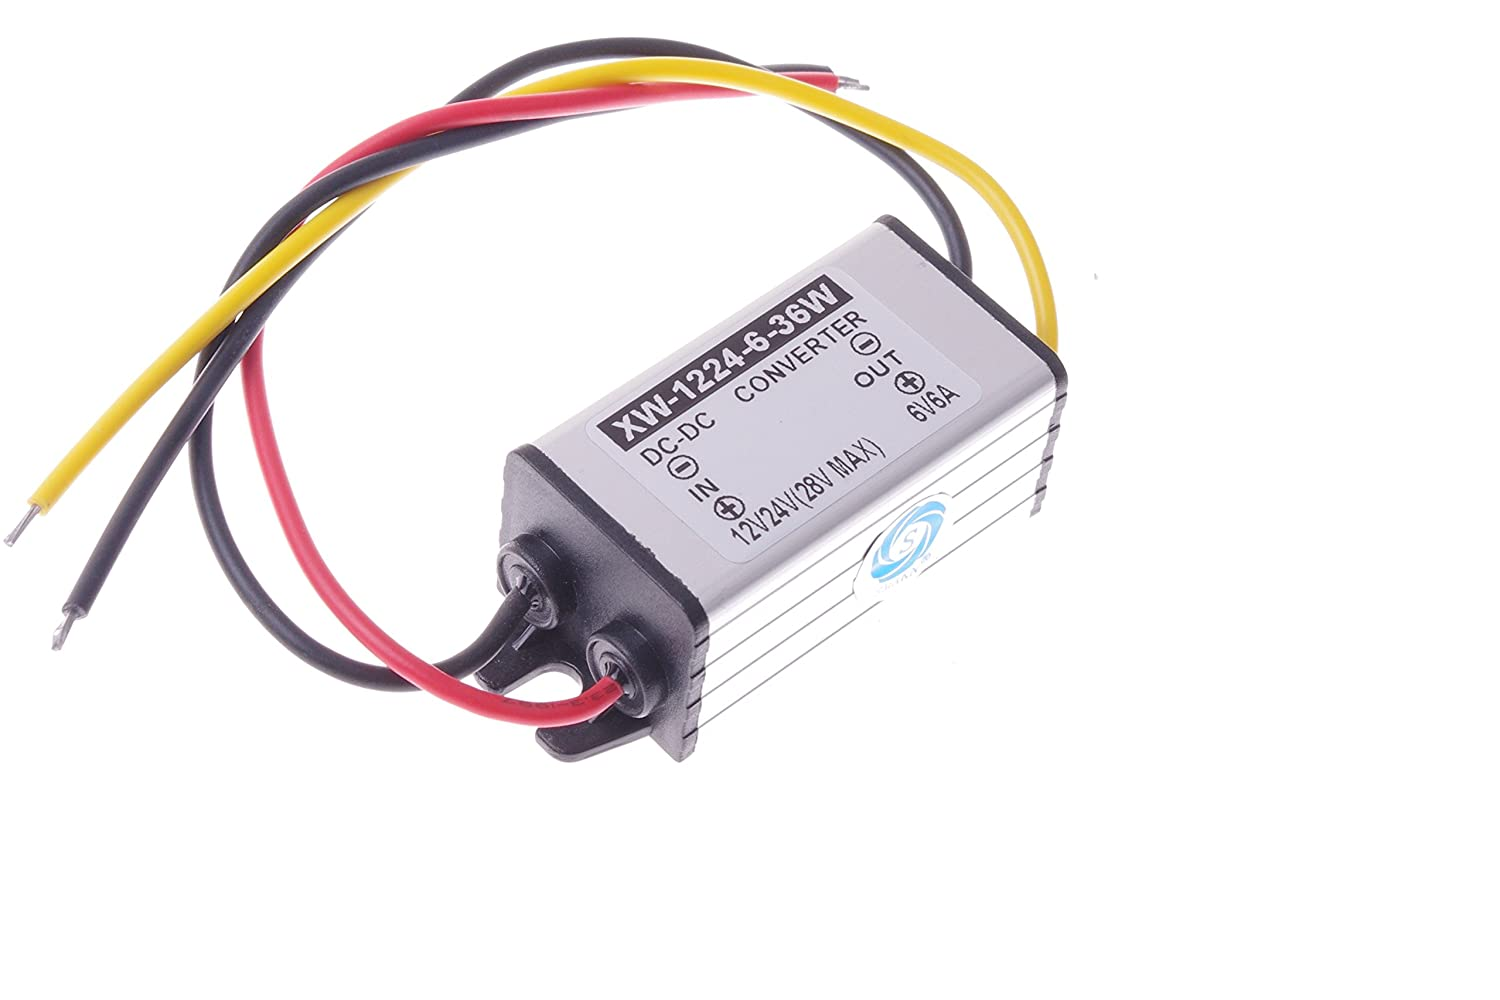 Smakn Dc 12v To 6v 6a 36w Buck Power Converter Sale 12vdc 5vdc Circuit Step Down Supply Waterproof Automotive